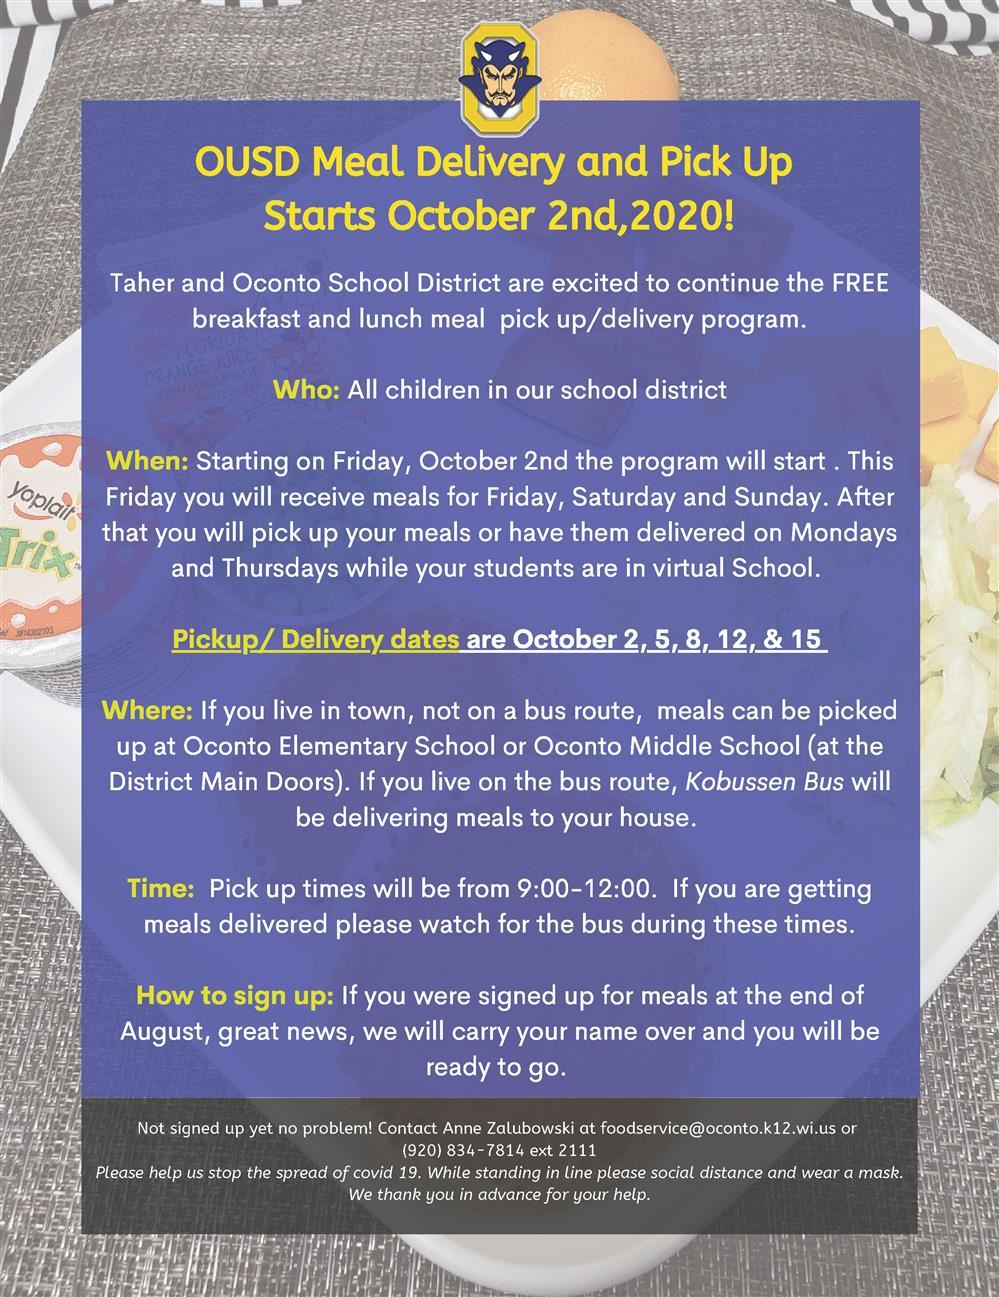 Meal Delivery and Pick Up Starts October 2nd